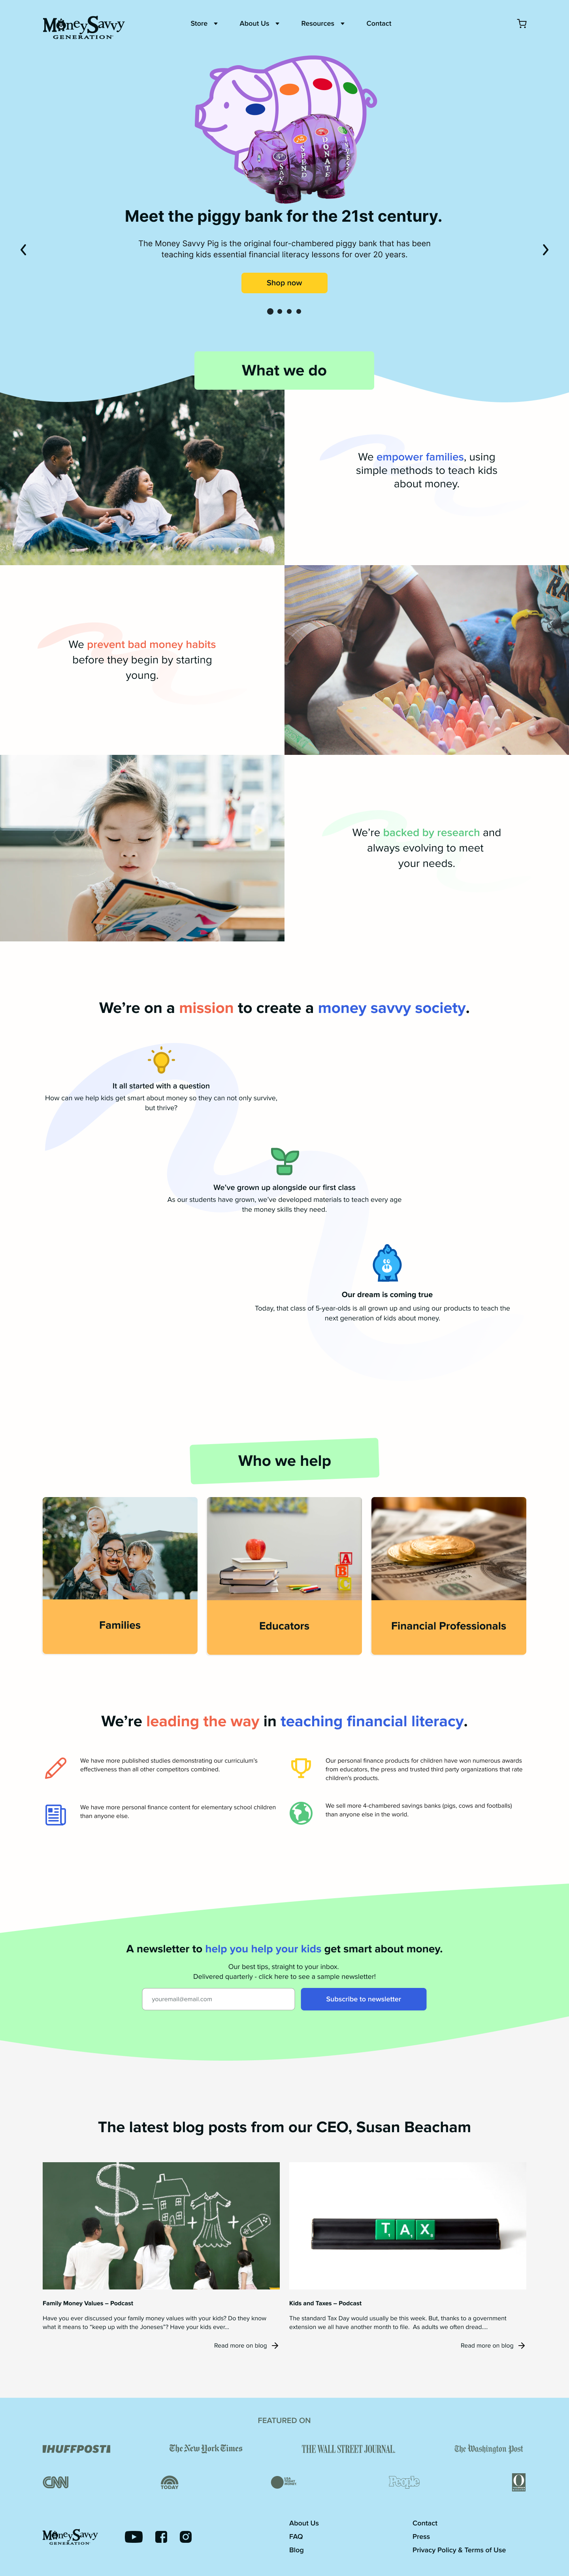 An image of the landing page for Money Savvy Generation